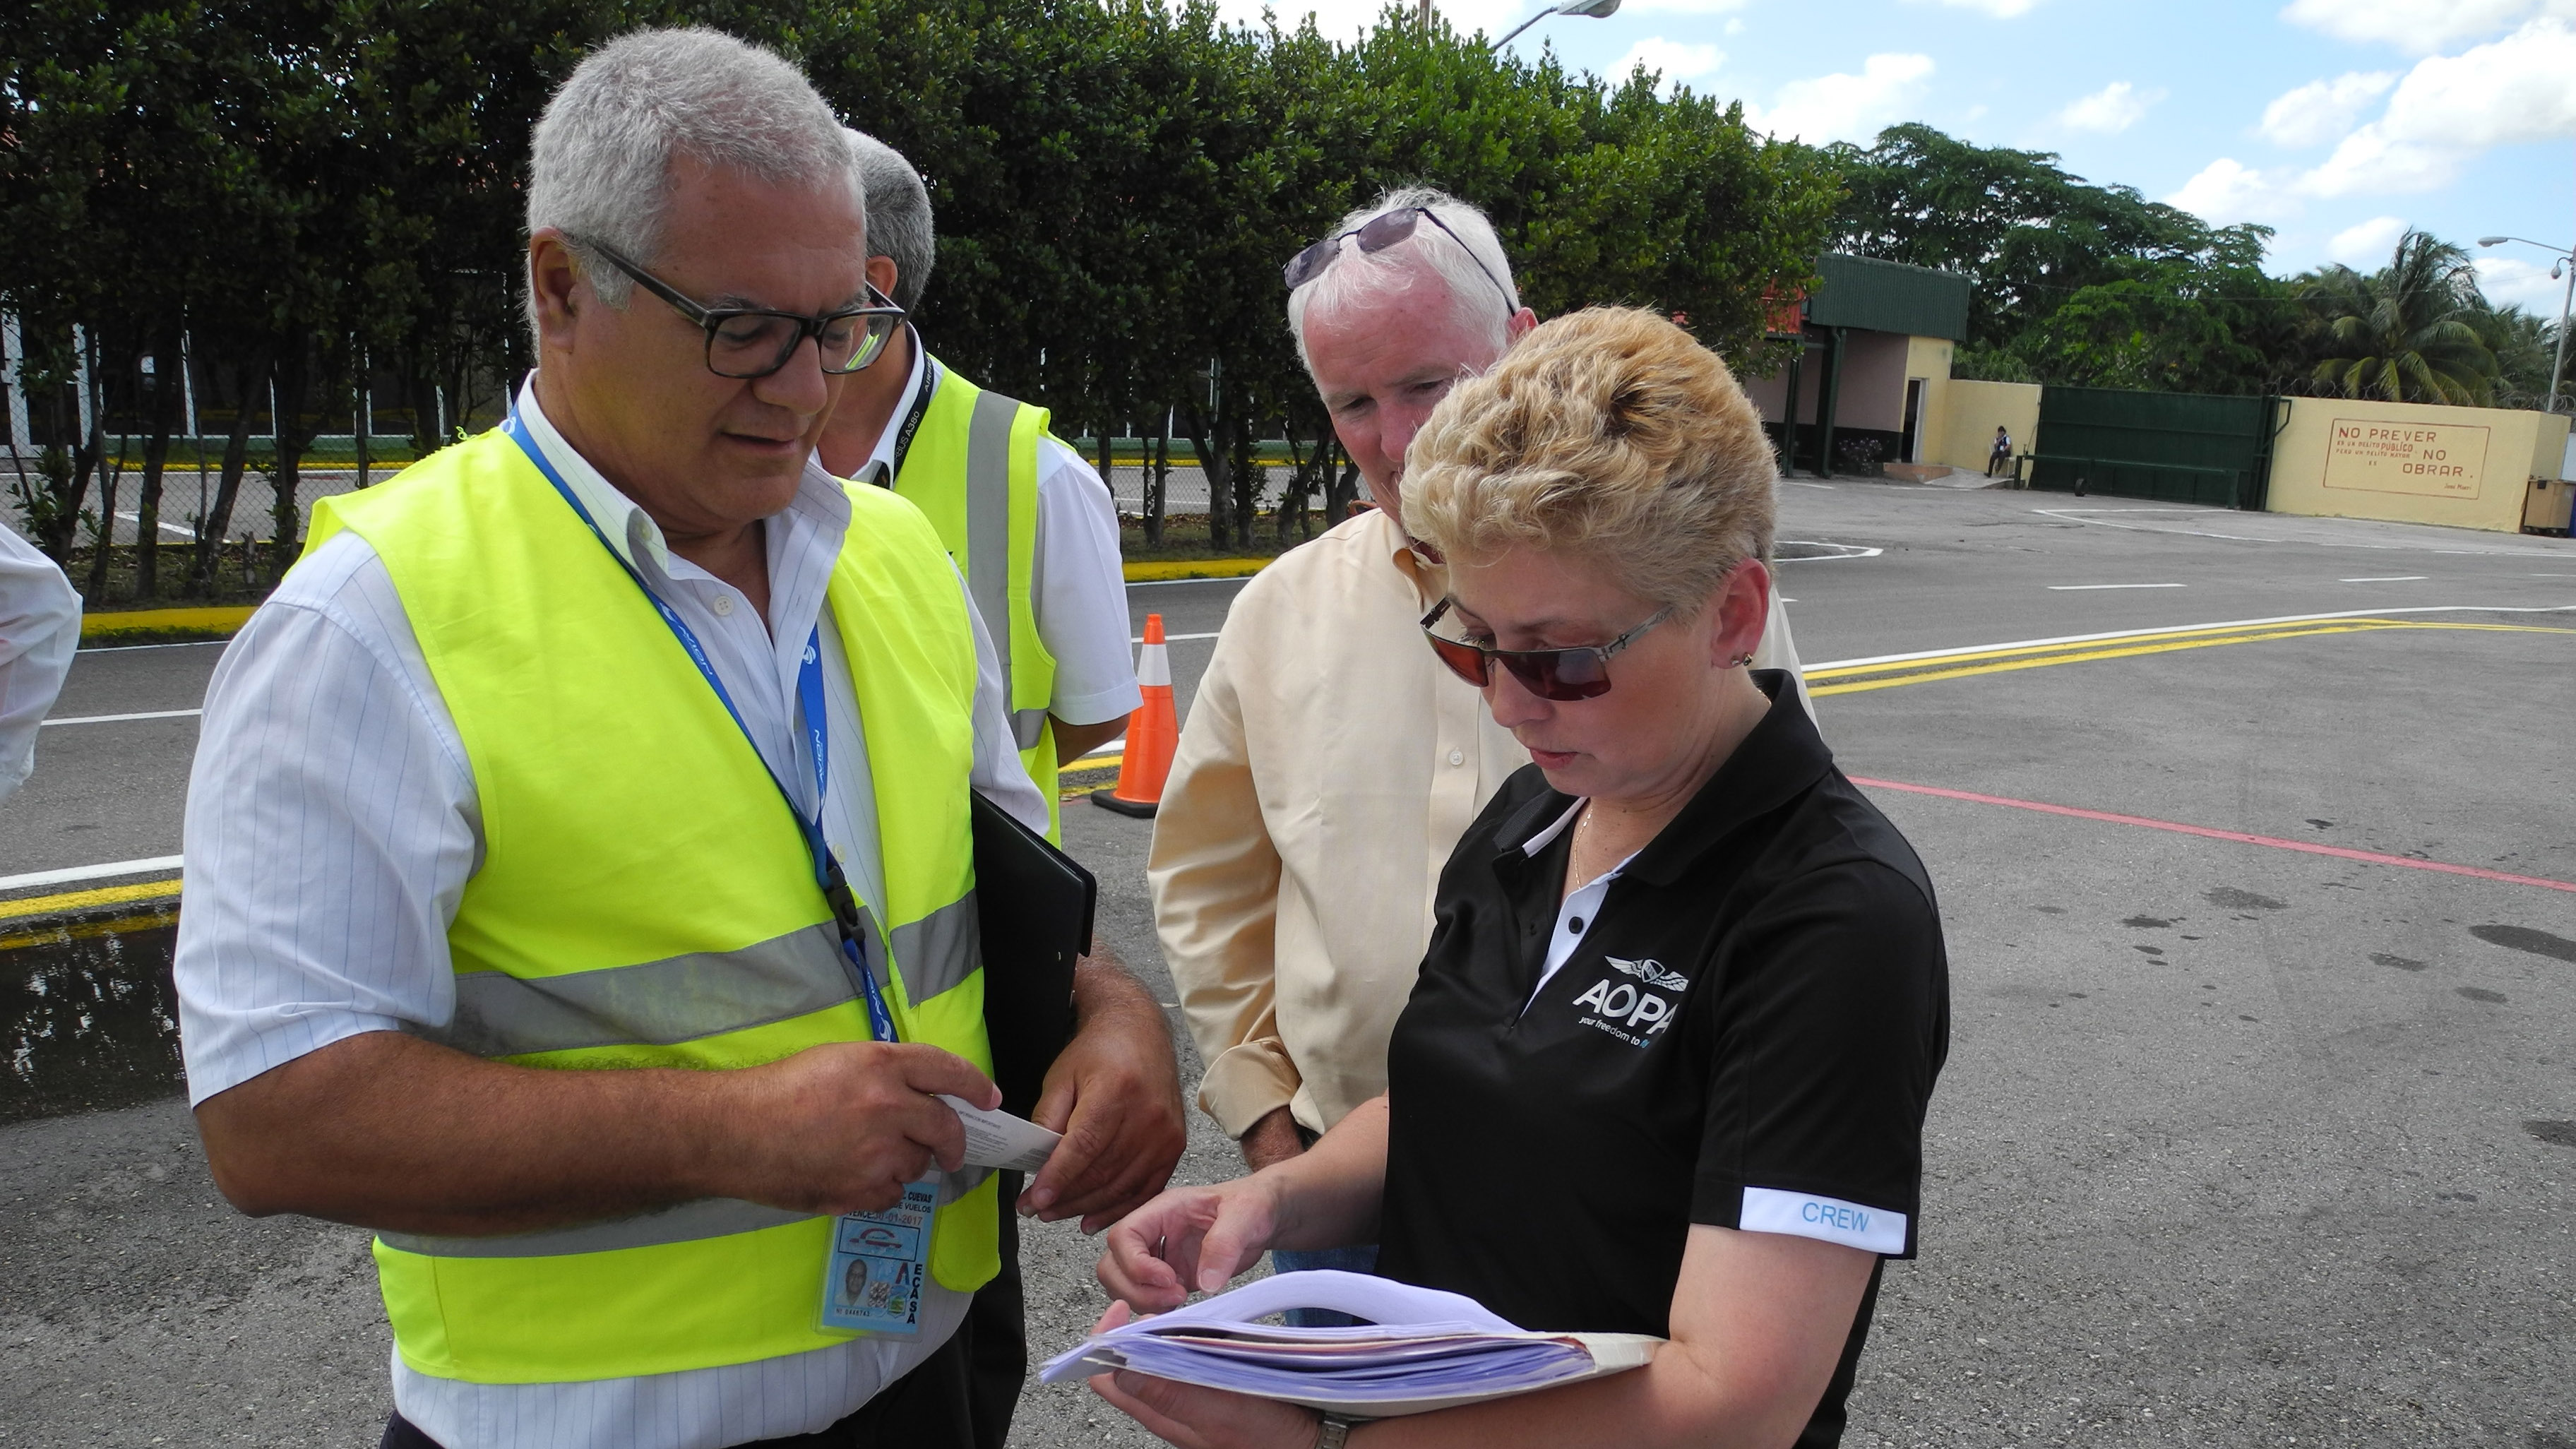 Processing into and out of Cuba is a multi-step effort, as AOPA corporate pilot Luz Beattie, a native Spanish speaker, and AOPA President Mark Baker learn in Havana.